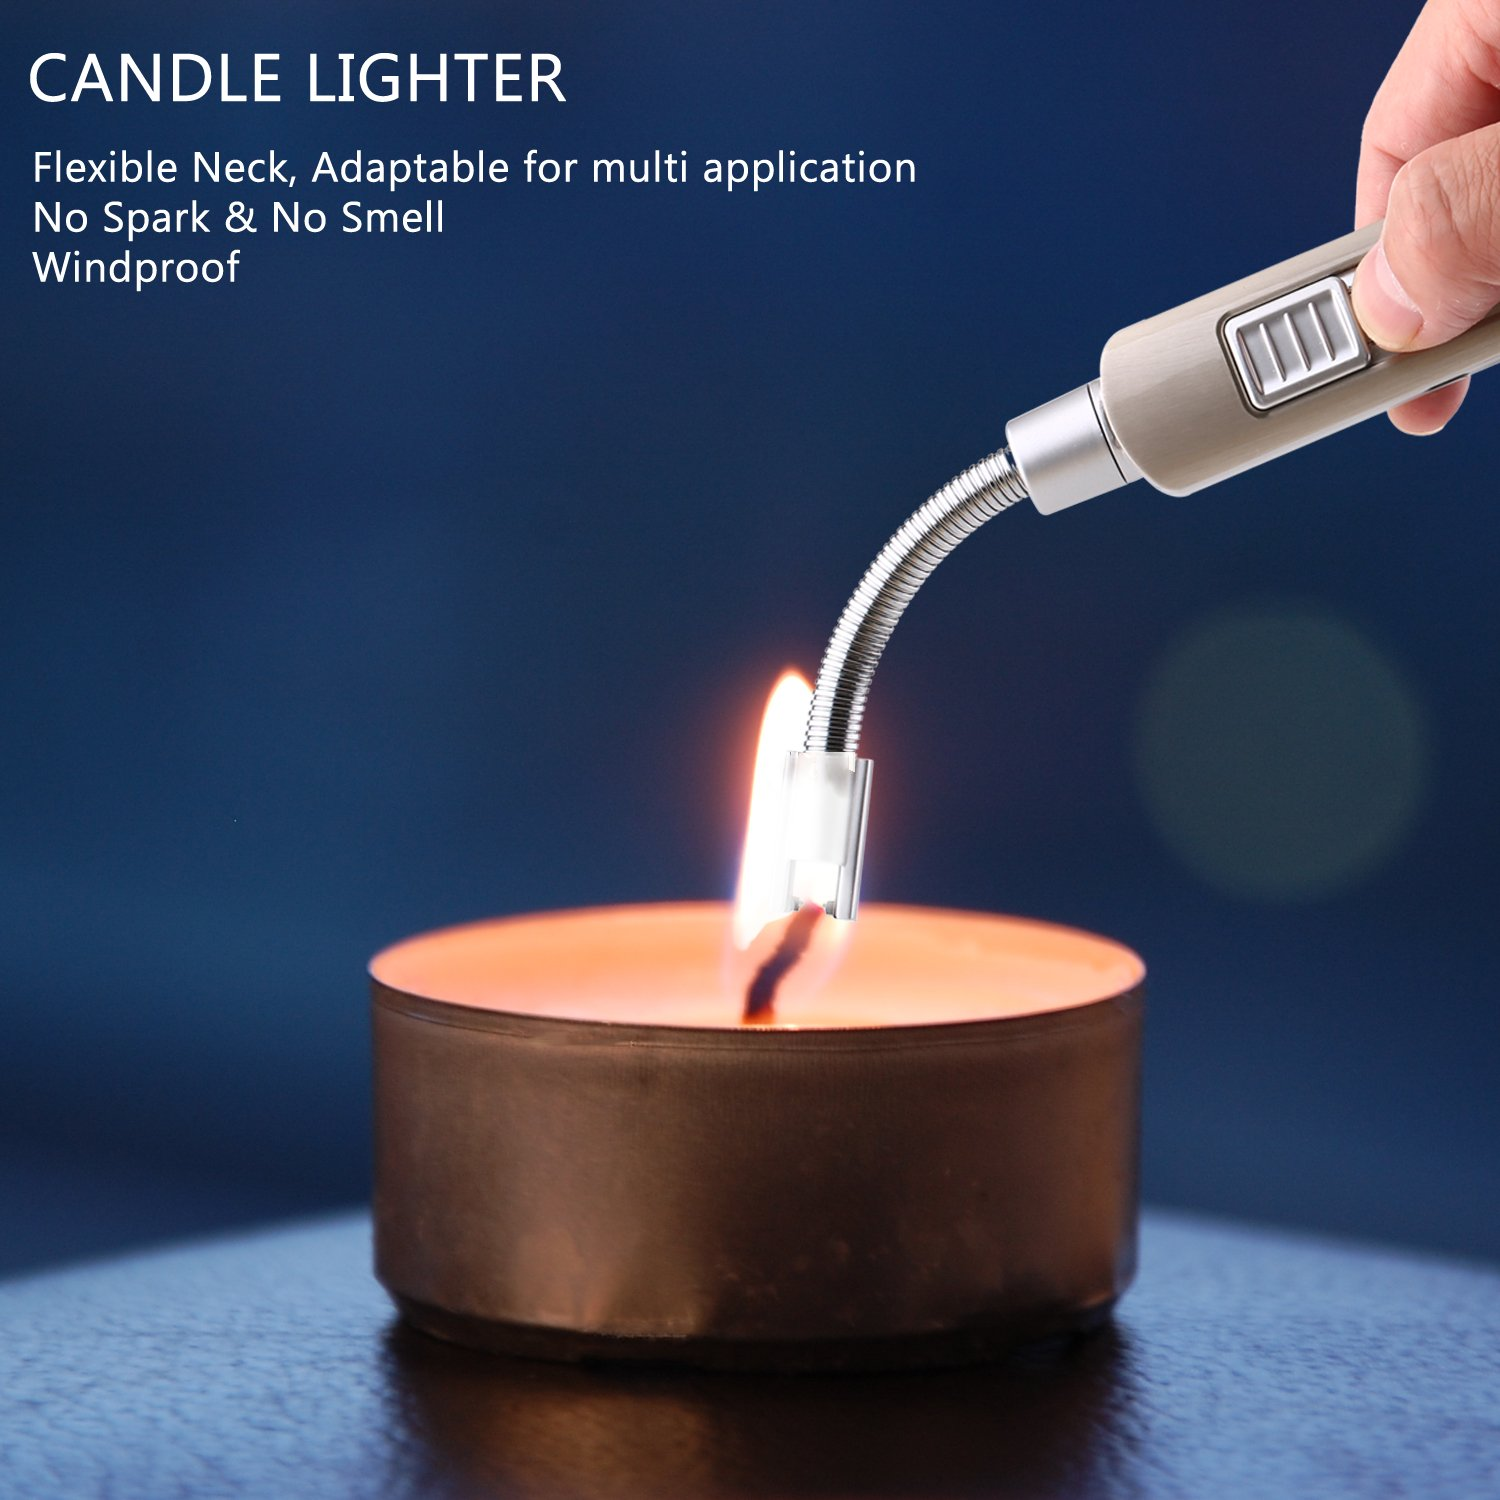 Cookan Electric Arc Lighter, USB Rechargeable No Spark Windproof Electronic Lighters for Candle BBQ, with Safety Switch, Long Neck 360° Flexible Rotation, Over 300 Times Spark per Charge (Metal Shell)